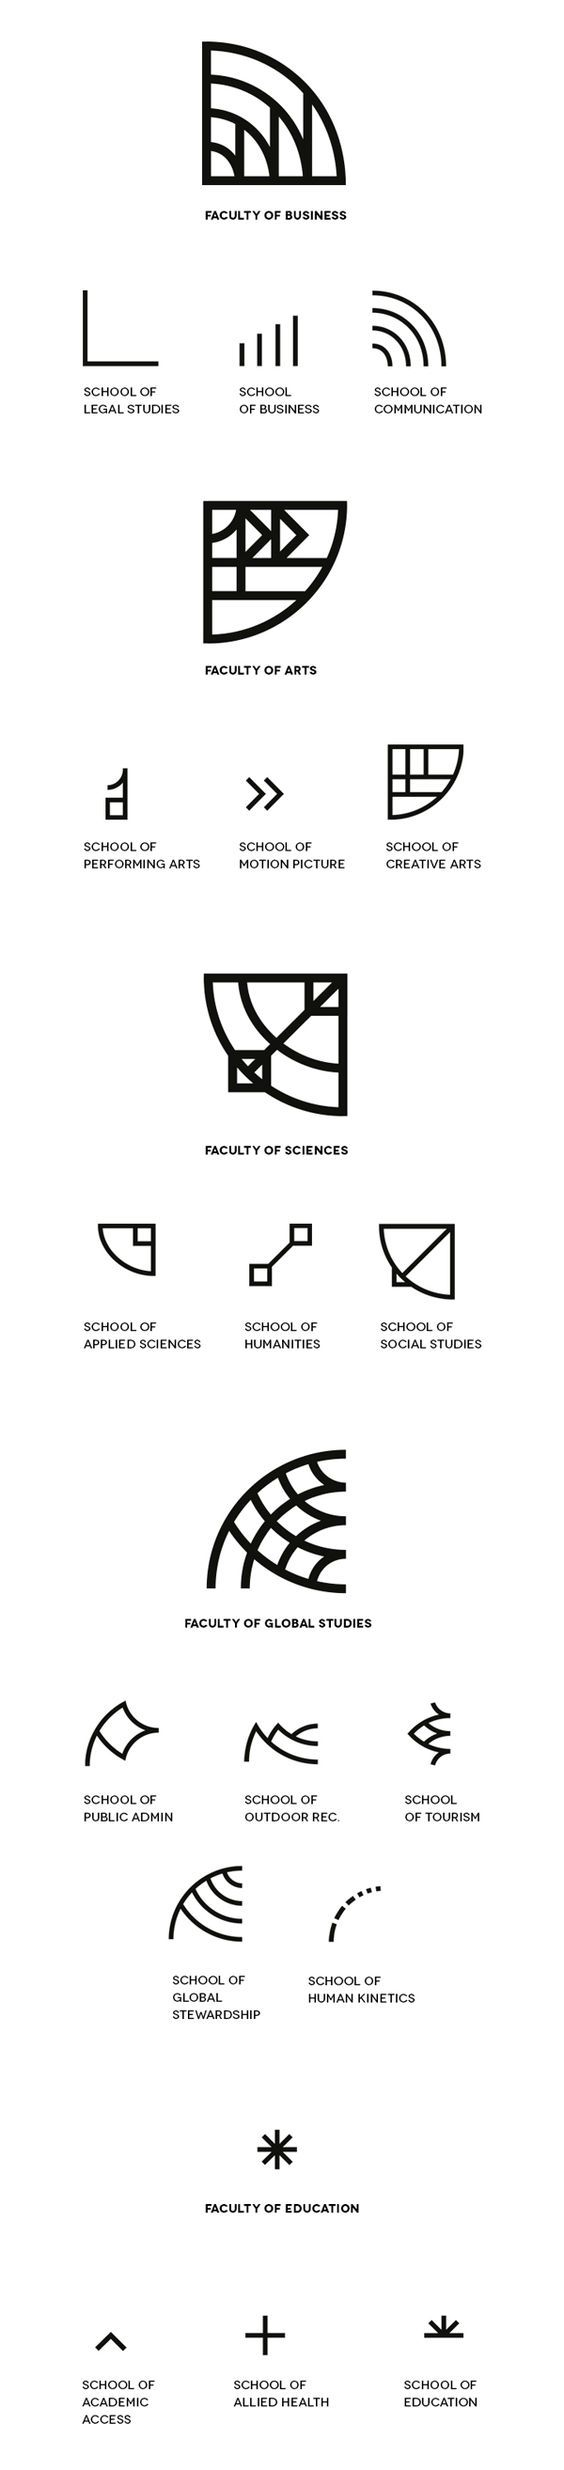 This is a very interesting idea, creating logos for each subheading that when overlapped create the logo for the whole. Could apply this to lots of things: